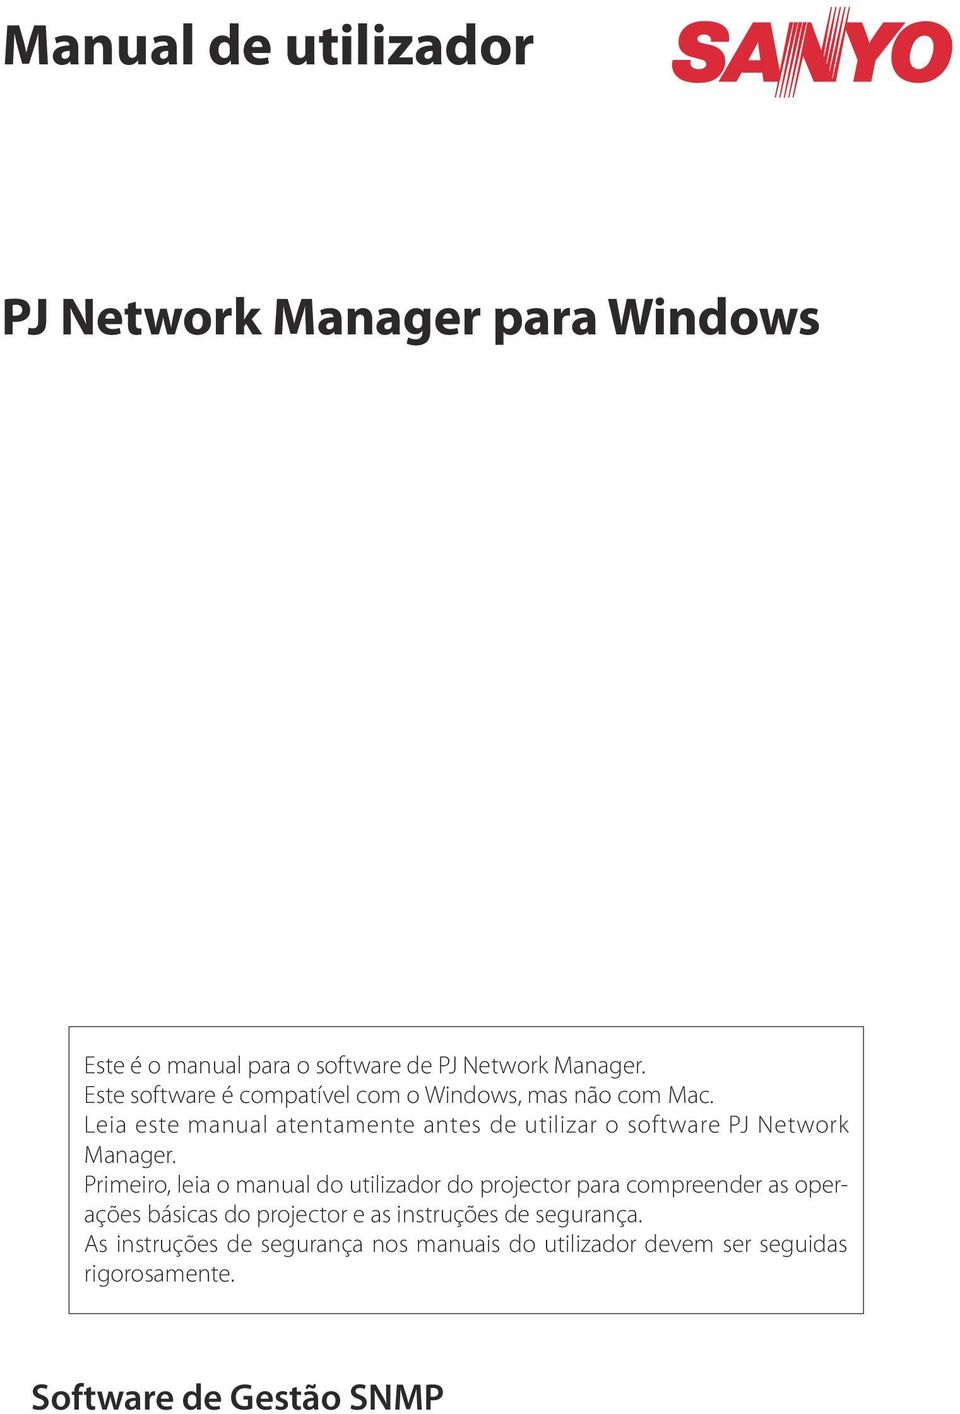 Leia este manual atentamente antes de utilizar o software PJ Network Manager.